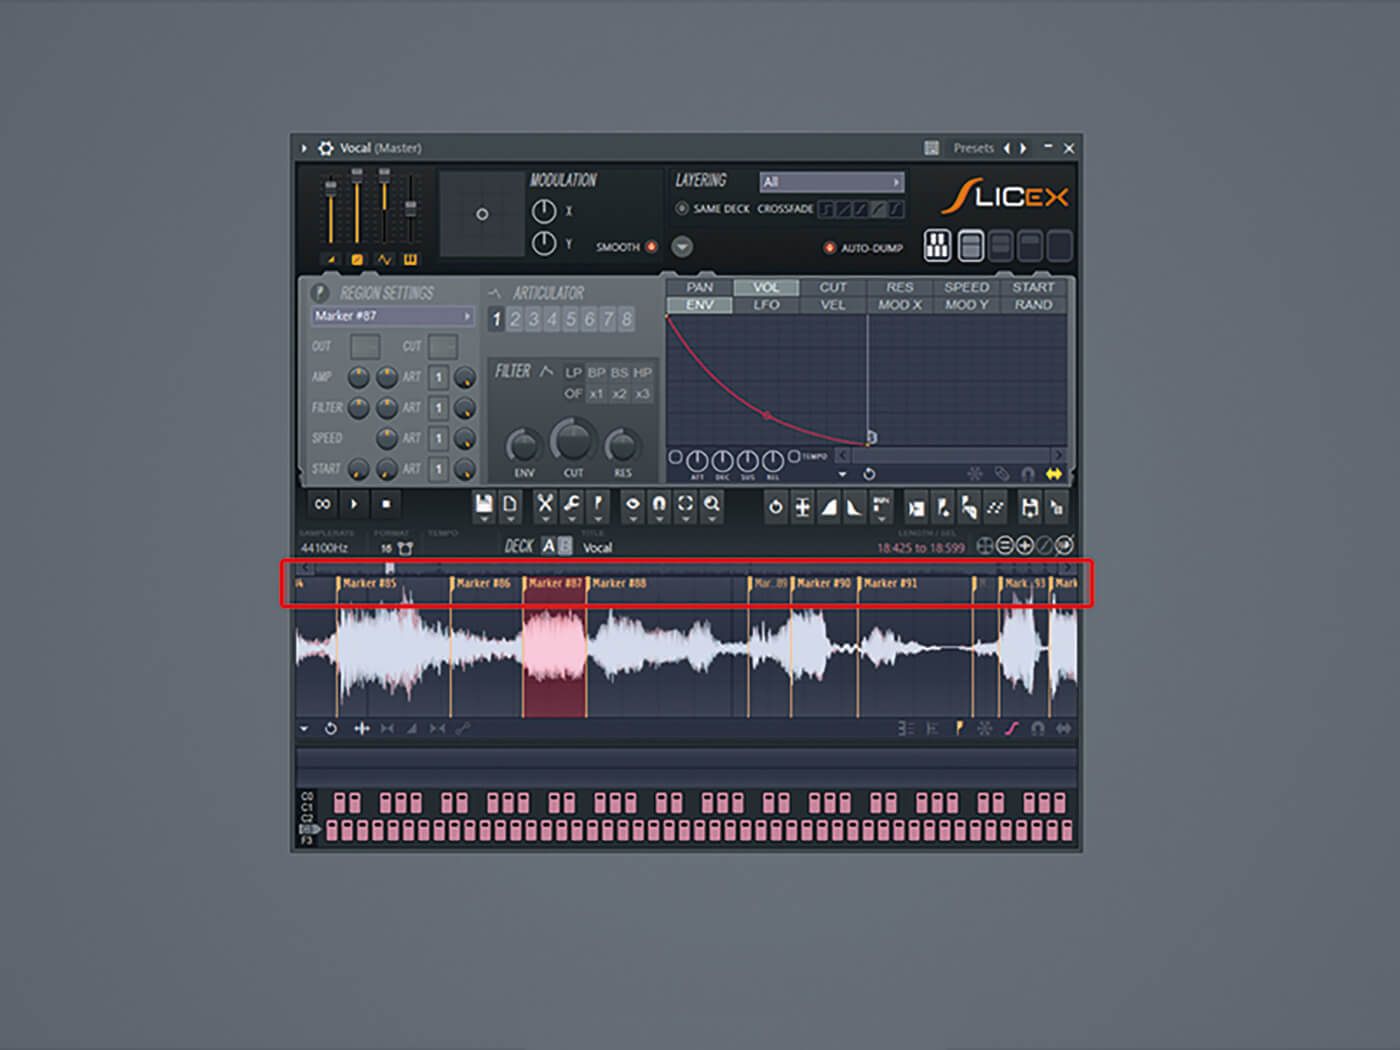 MT 207 FL Studio TUT Step 4